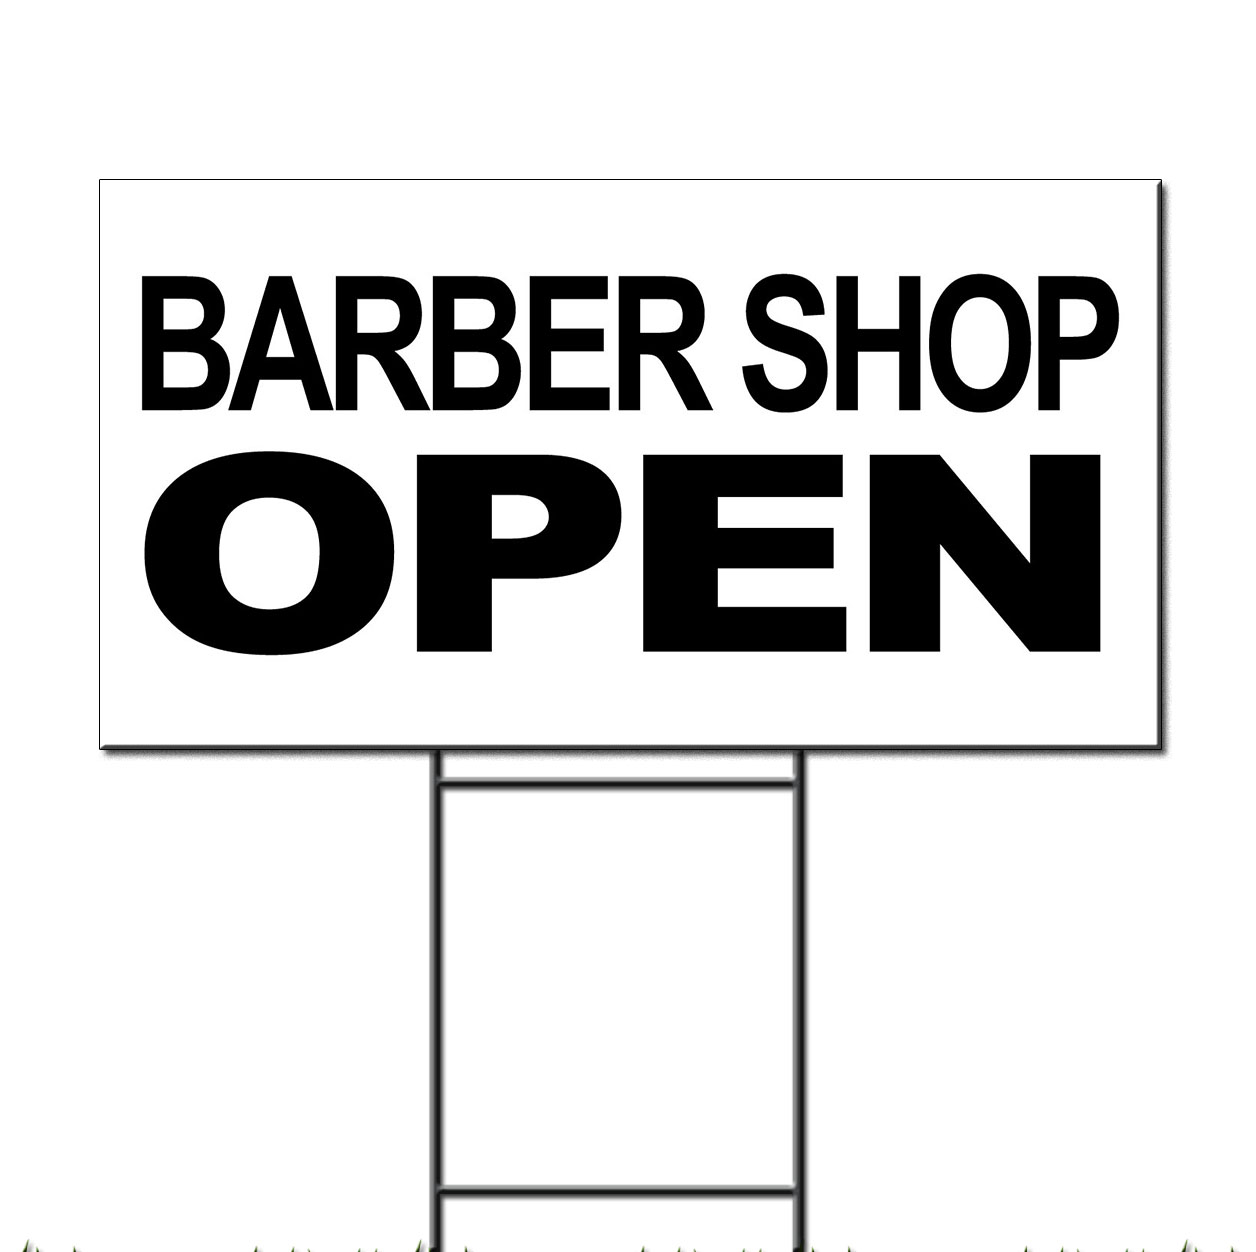 Barber Shops Open : Barber Shop Open Black Corrugated Plastic Yard Sign /Free Stakes ...